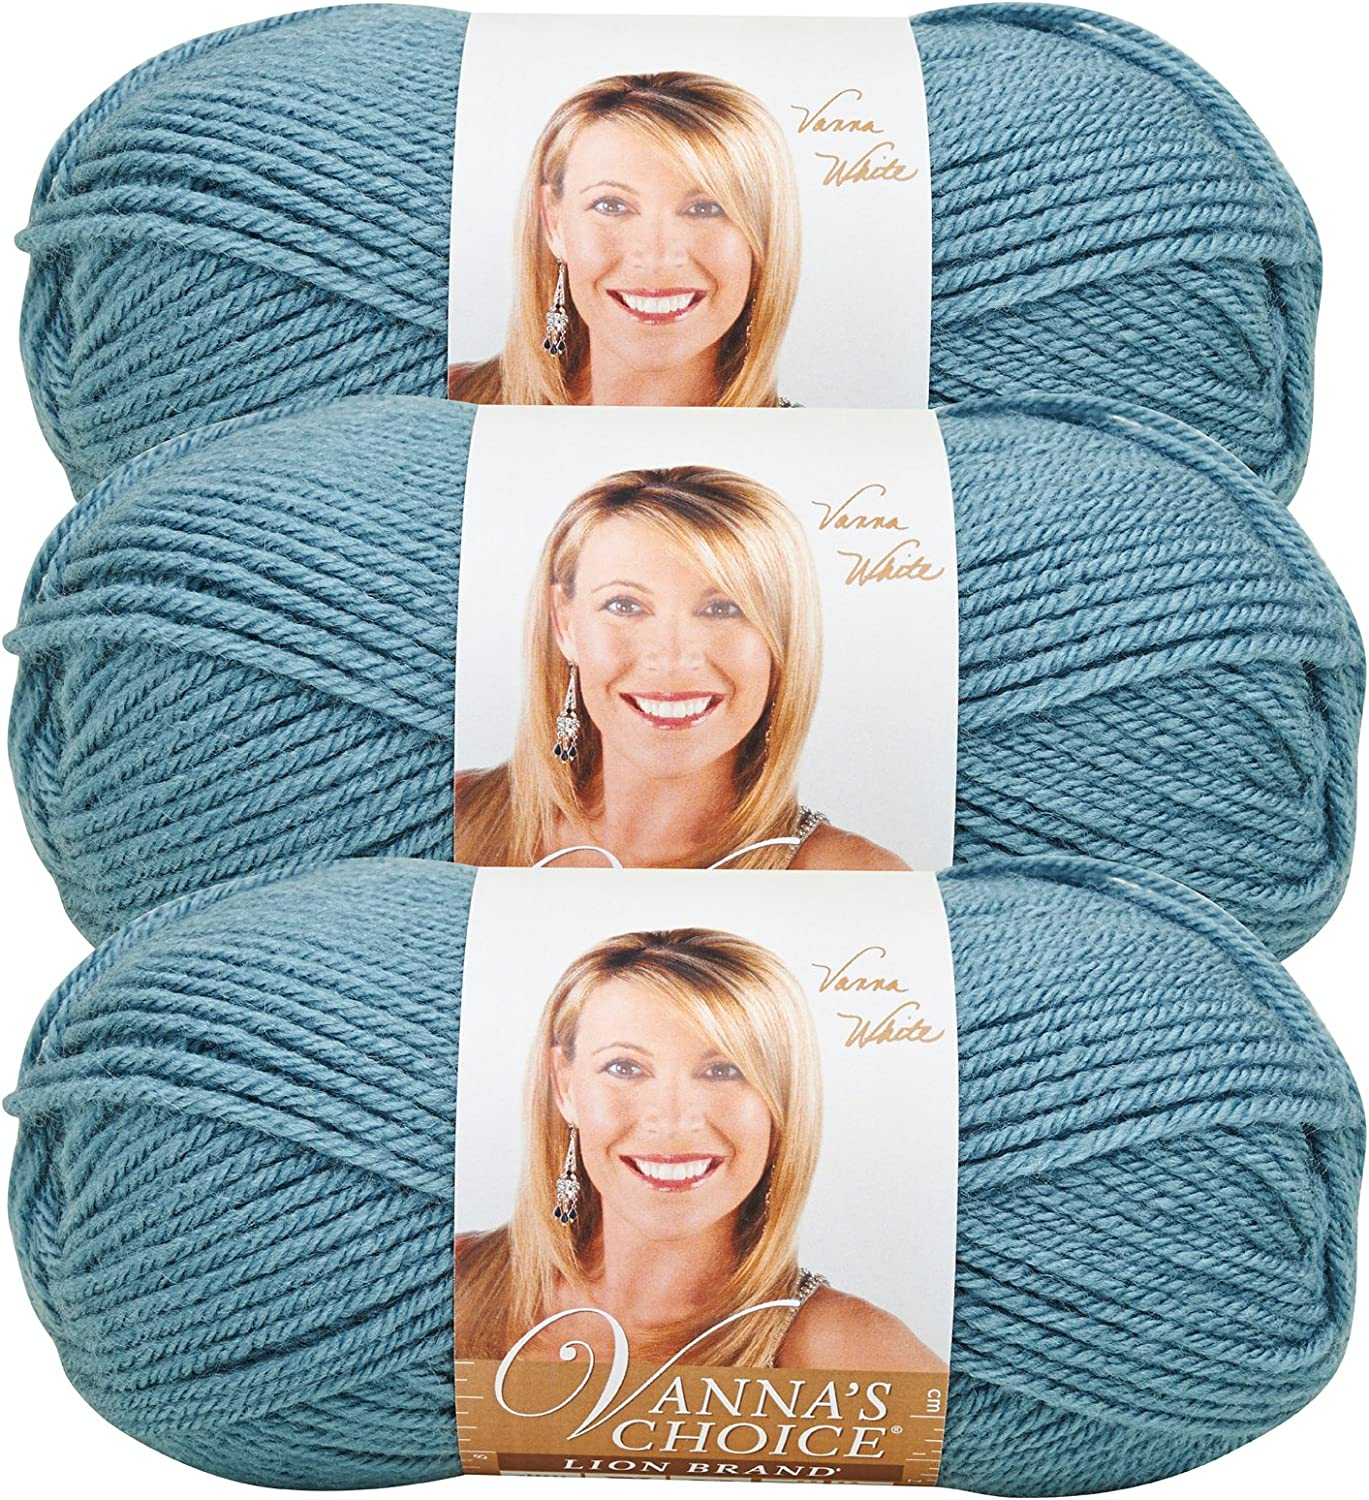 price Lion Super beauty product restock quality top Brand Vanna's Choice Yarn Blue 860-108 3-Pack Dusty